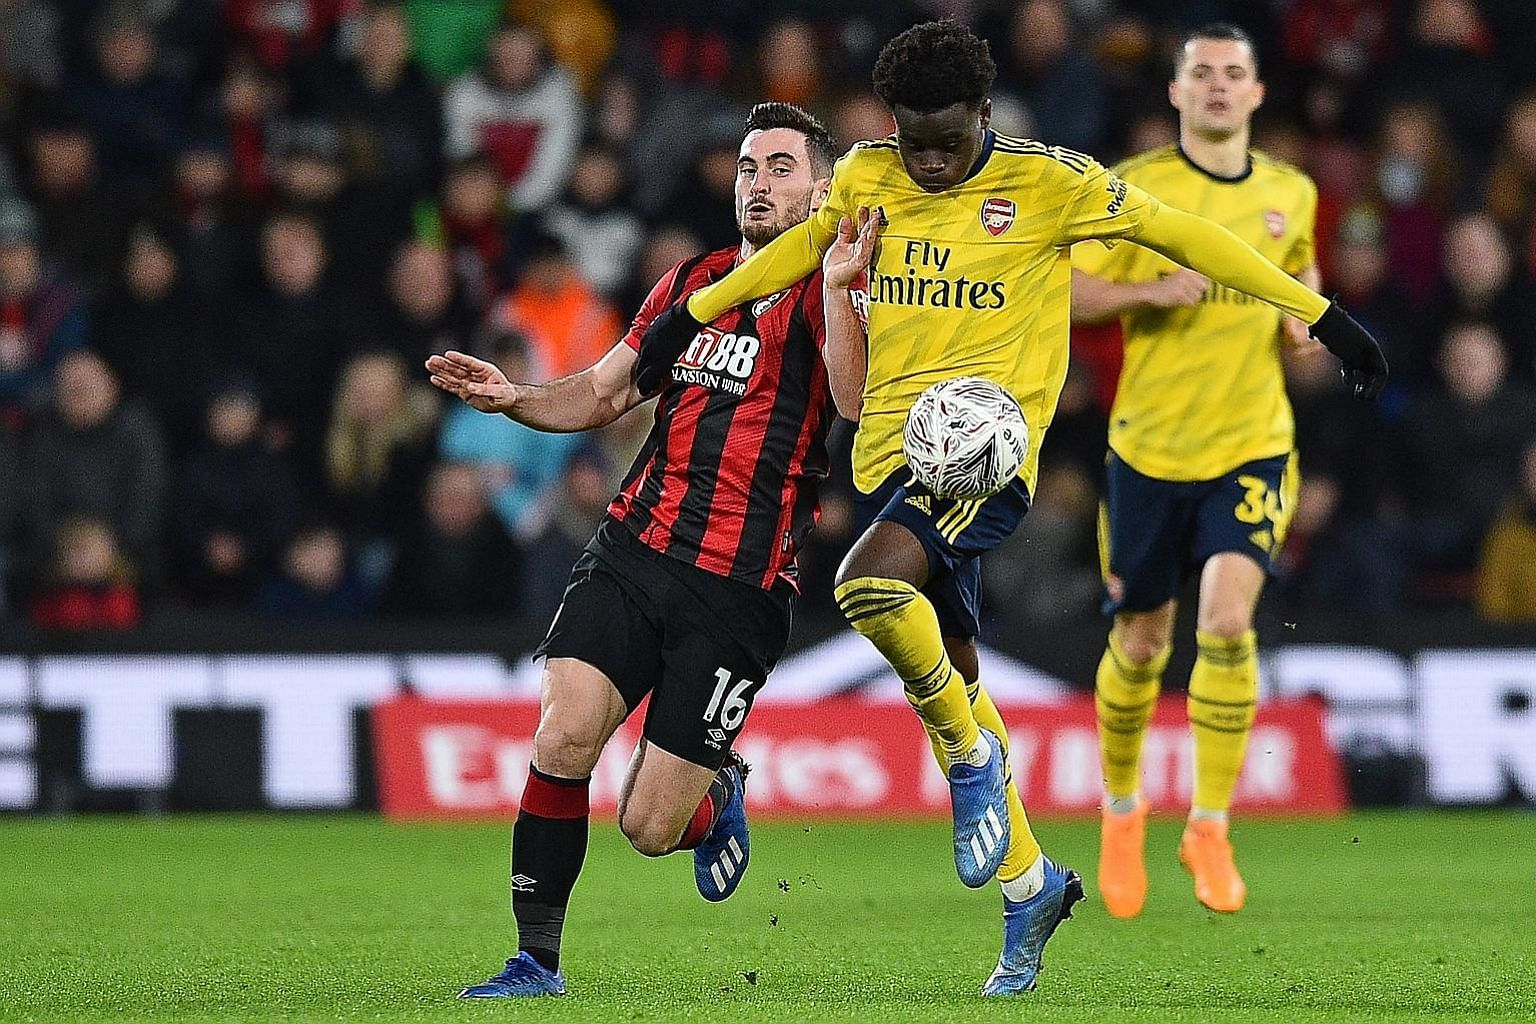 Arsenal's Bukayo Saka holding off Bournemouth's Lewis Cook during their FA Cup tie on Monday. The Gunners won 2-1, with the youngster opening the scoring, to set up a fifth-round meeting with Portsmouth. PHOTO: AGENCE FRANCE-PRESSE